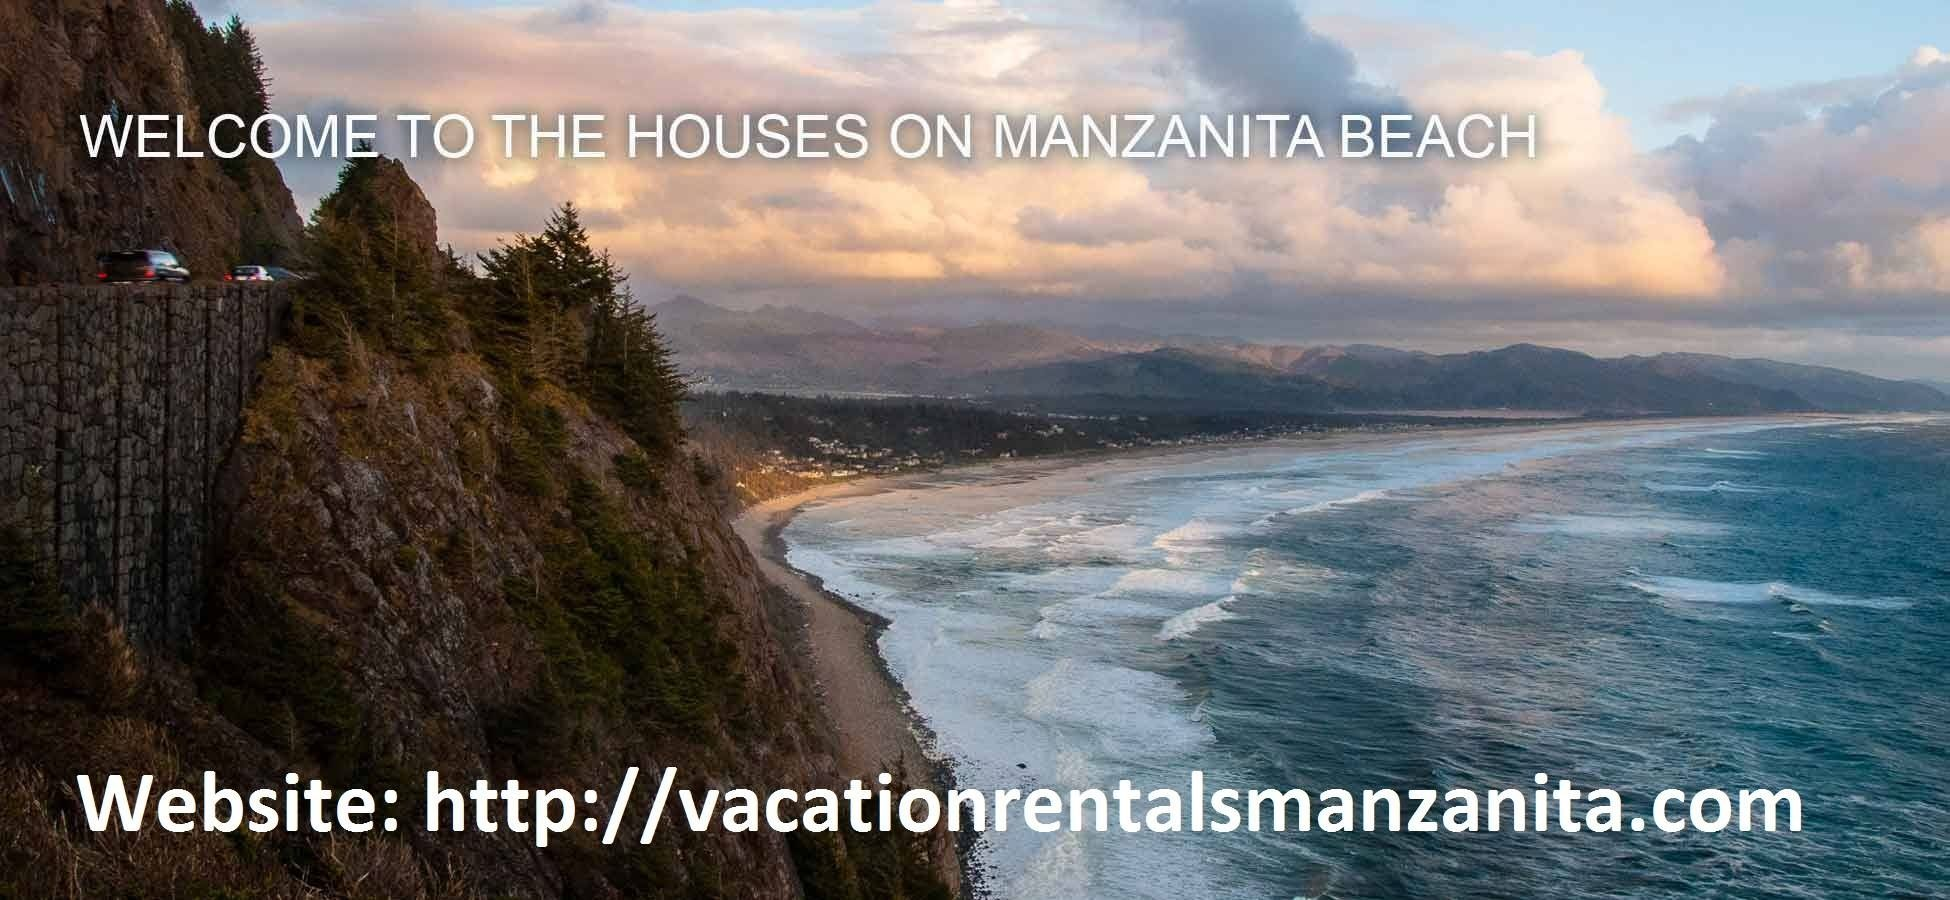 Like many of our guests we've come to know over the years, we hope you also come to think of these special houses as your very own vacation homes – without all the work! Please visit our website: http://vacationrentalsmanzanita.com